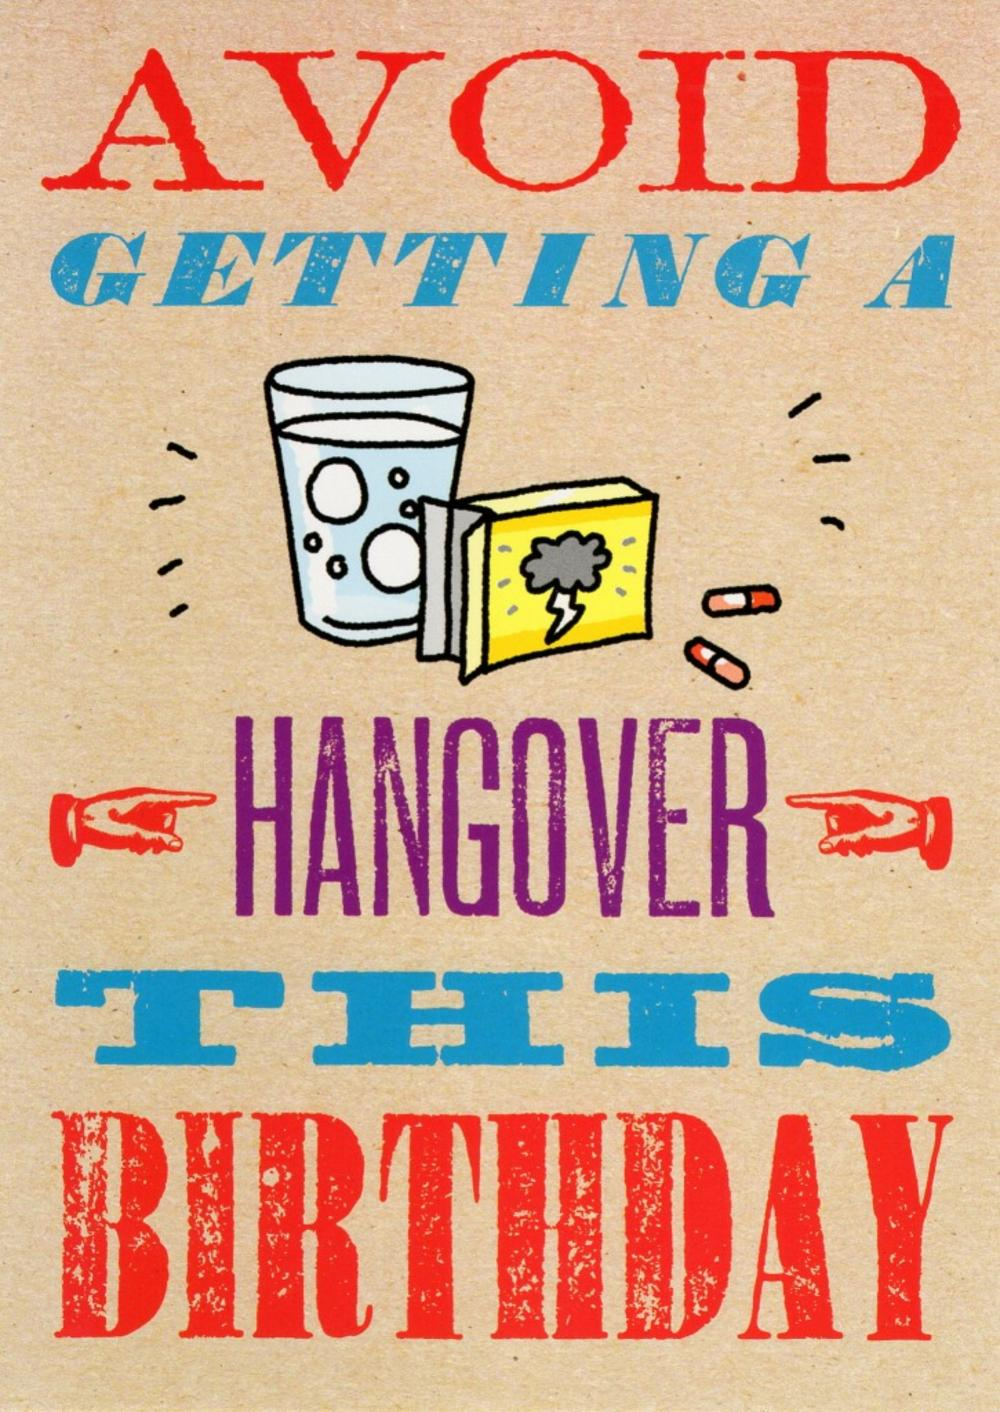 avoid getting a hangover funny birthday card - Funny Birthday Card Images